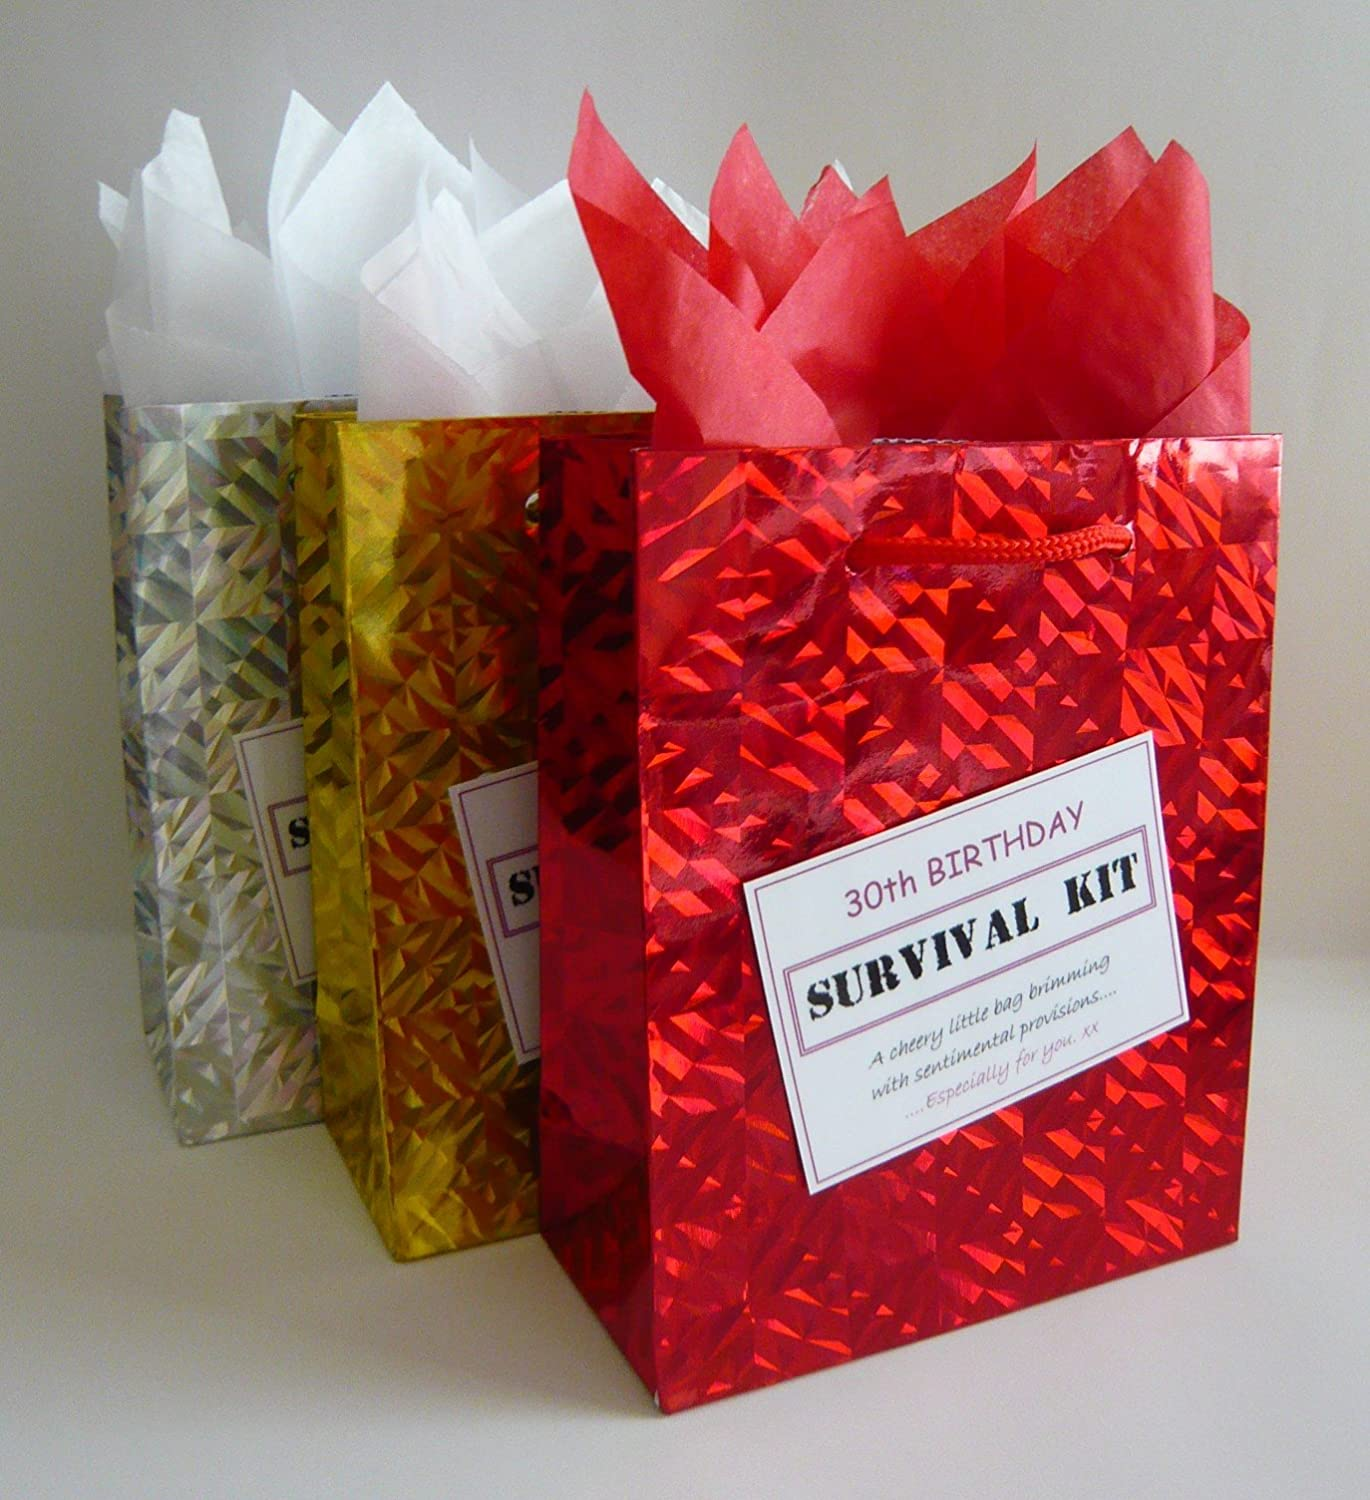 30th Birthday Survival Kit. For Female. Fun Gift Idea. Novelty Present. For Her.: Amazon.co.uk: Office Products